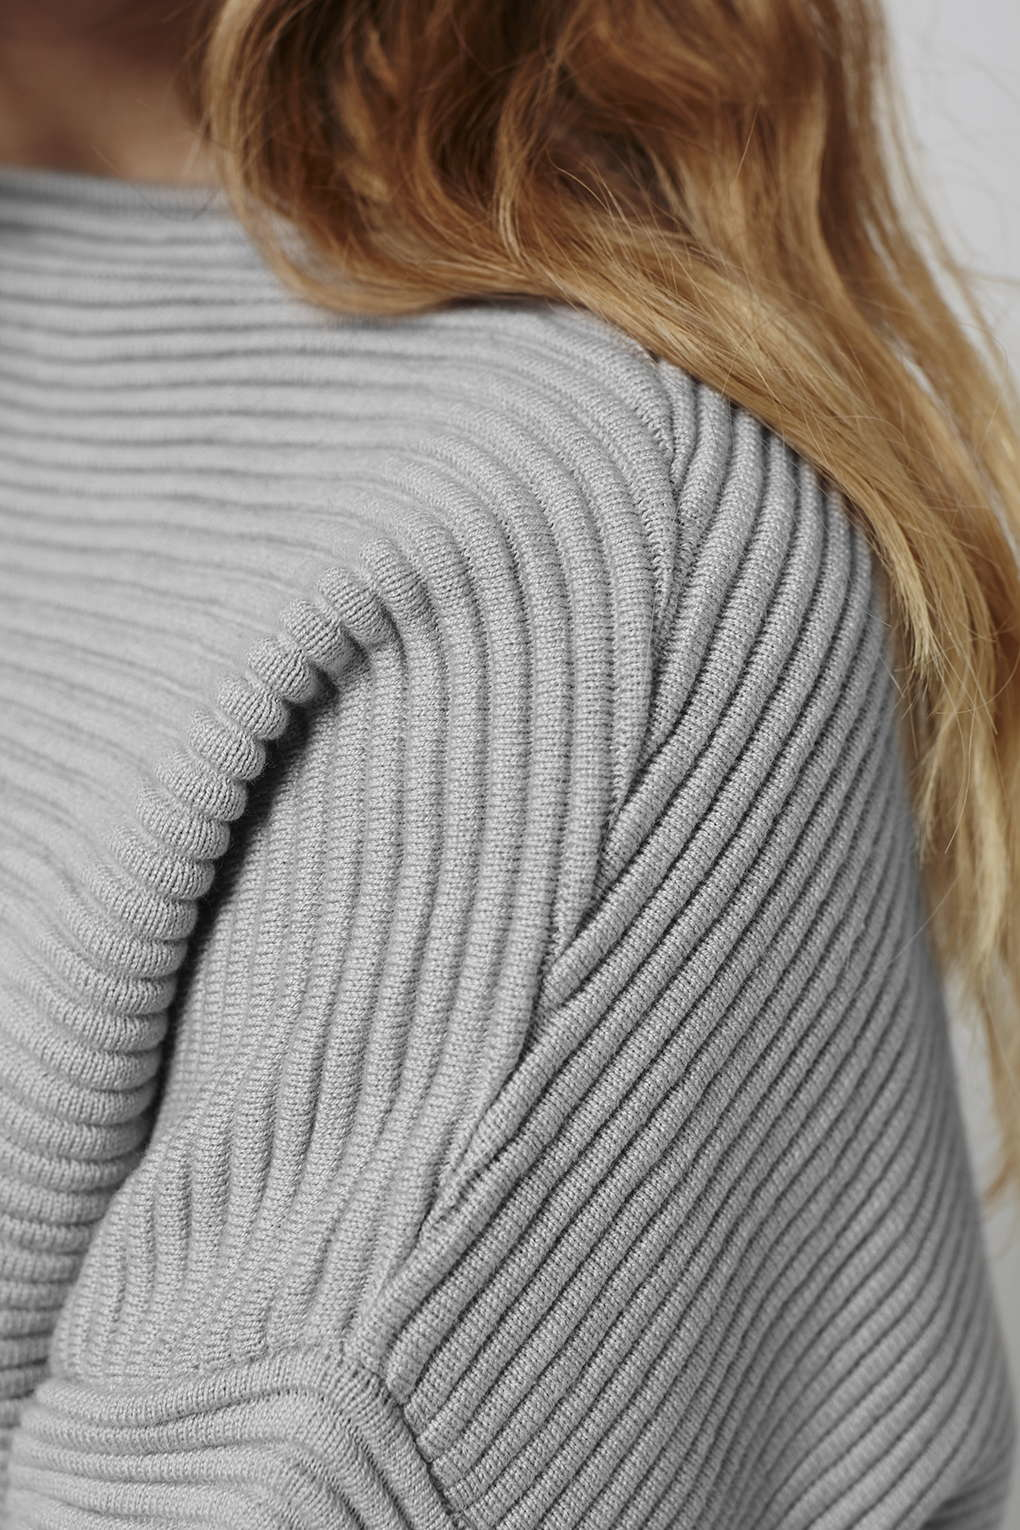 Topshop Horizontal Ribbed Sweatshirt in Gray | Lyst